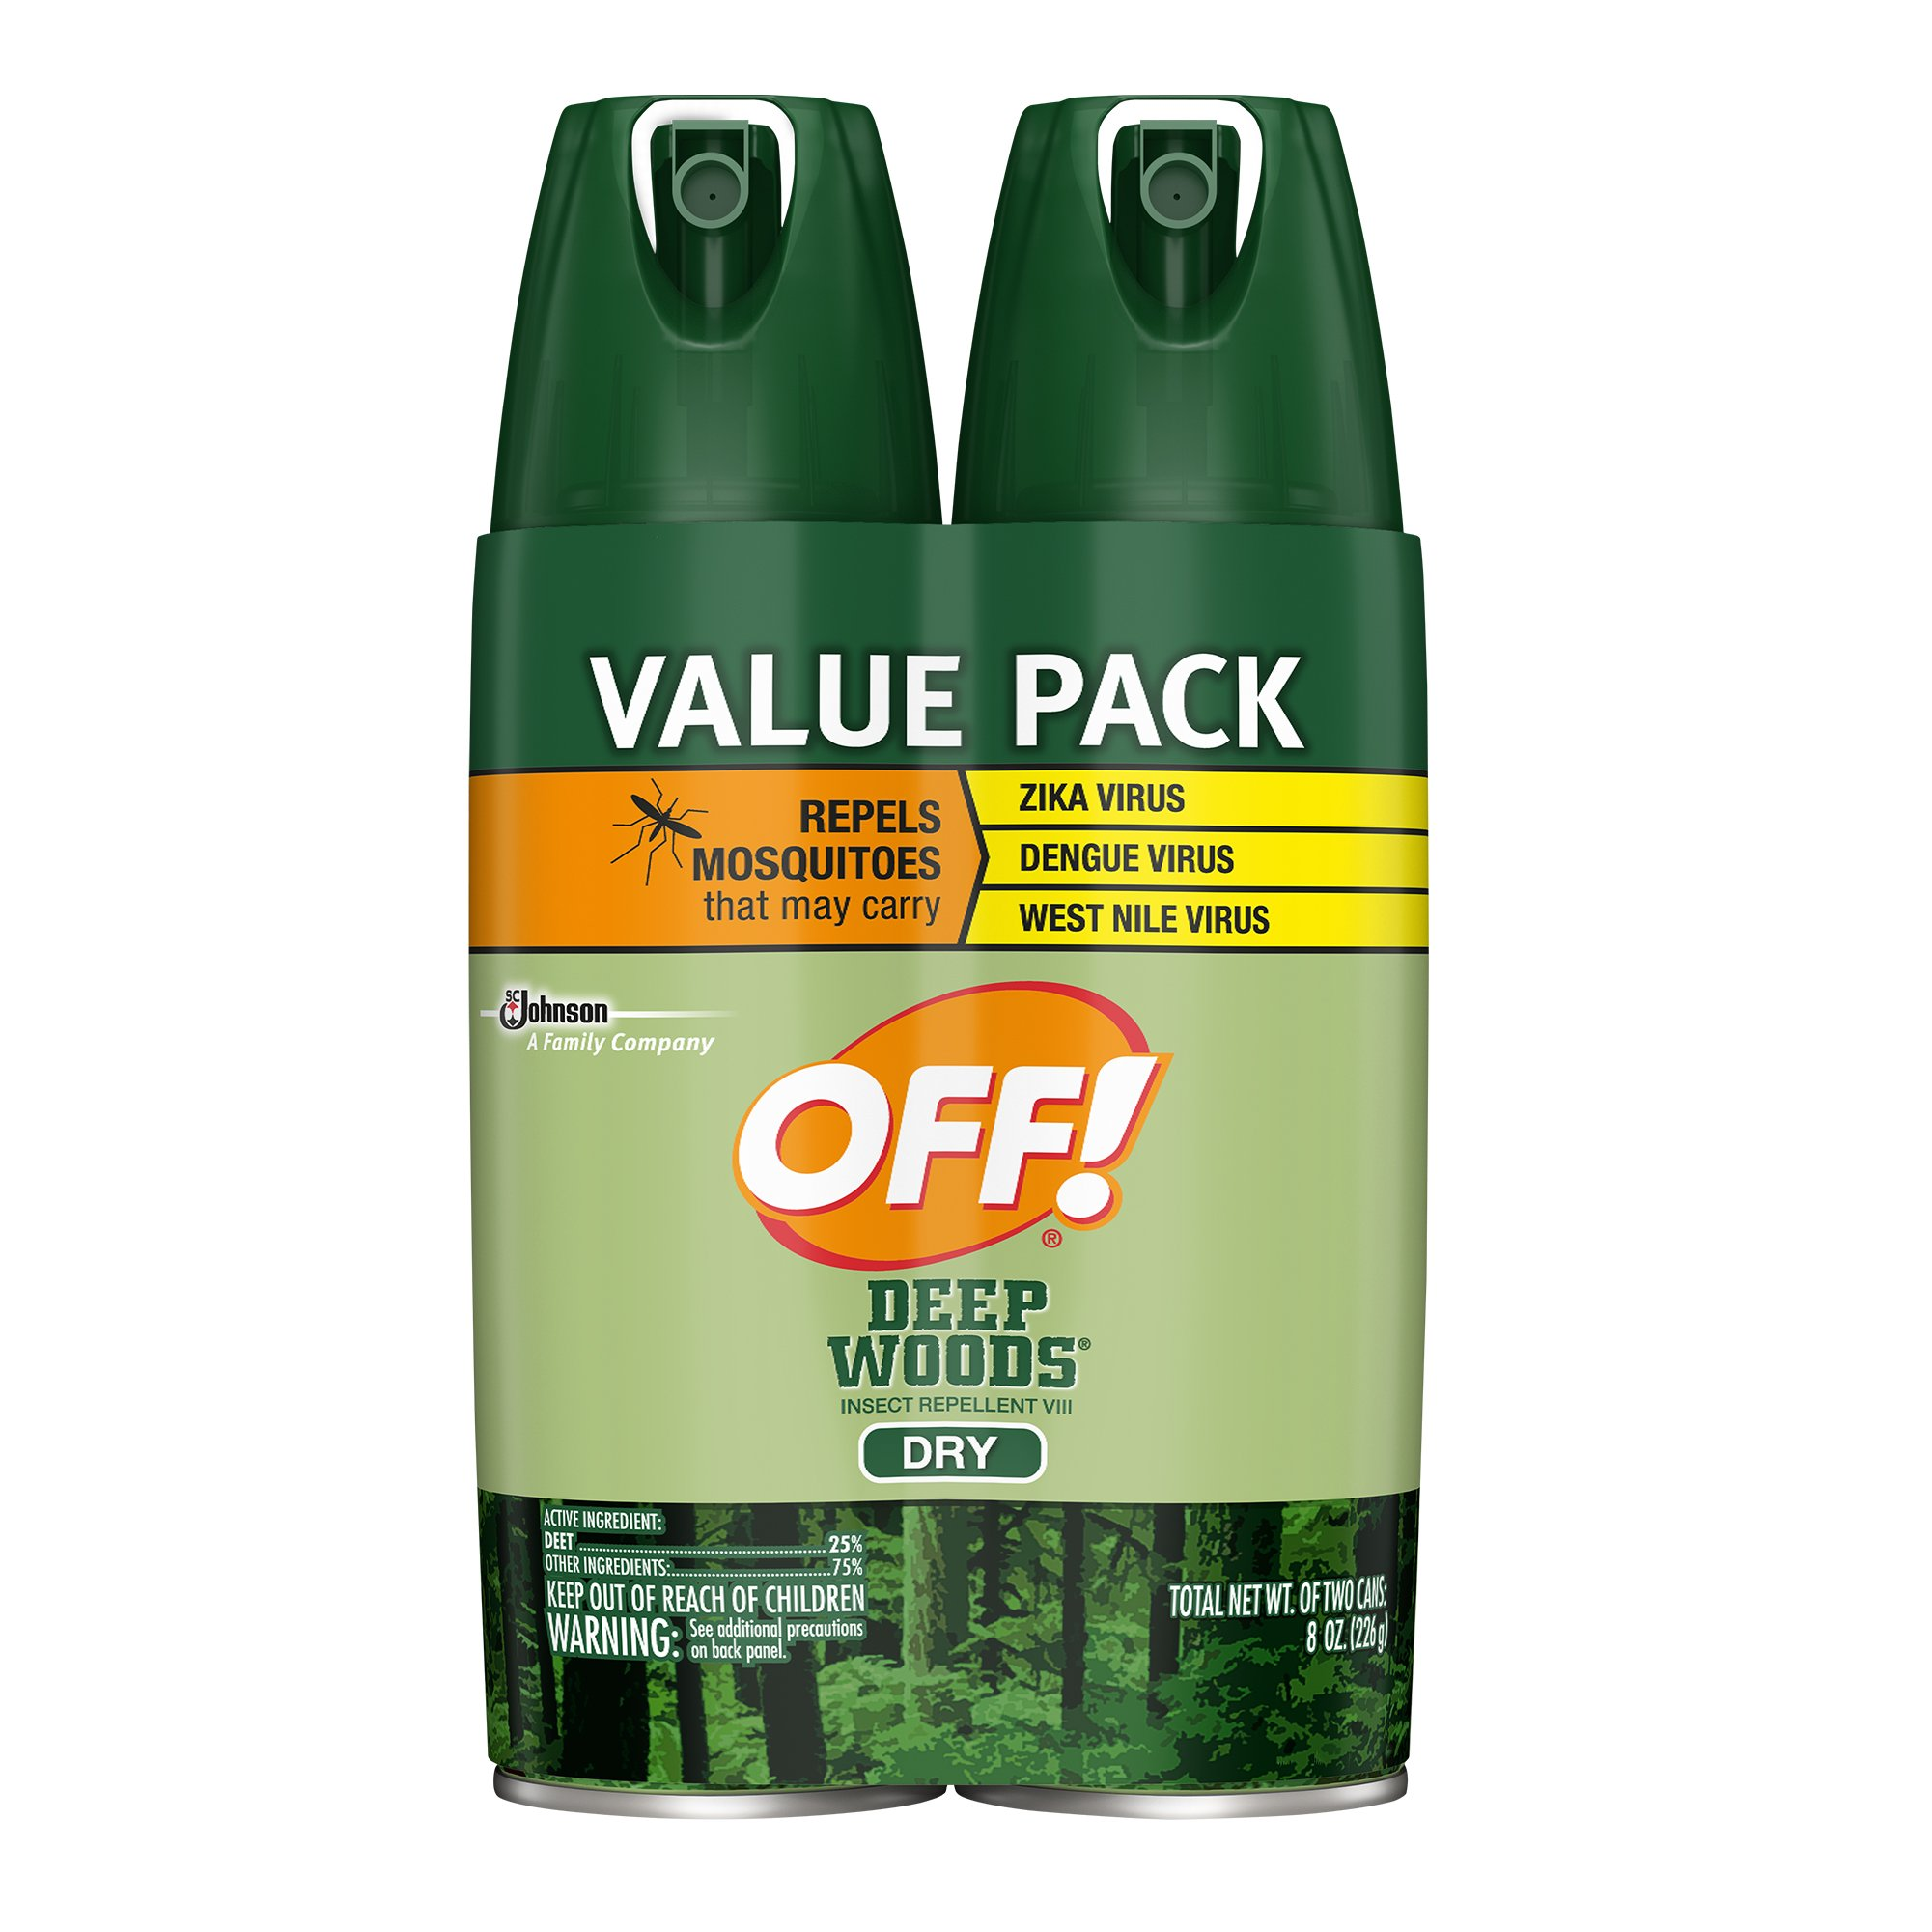 OFF! Deep Woods Insect Repellent VIII Dry, 4 oz. (2 ct)